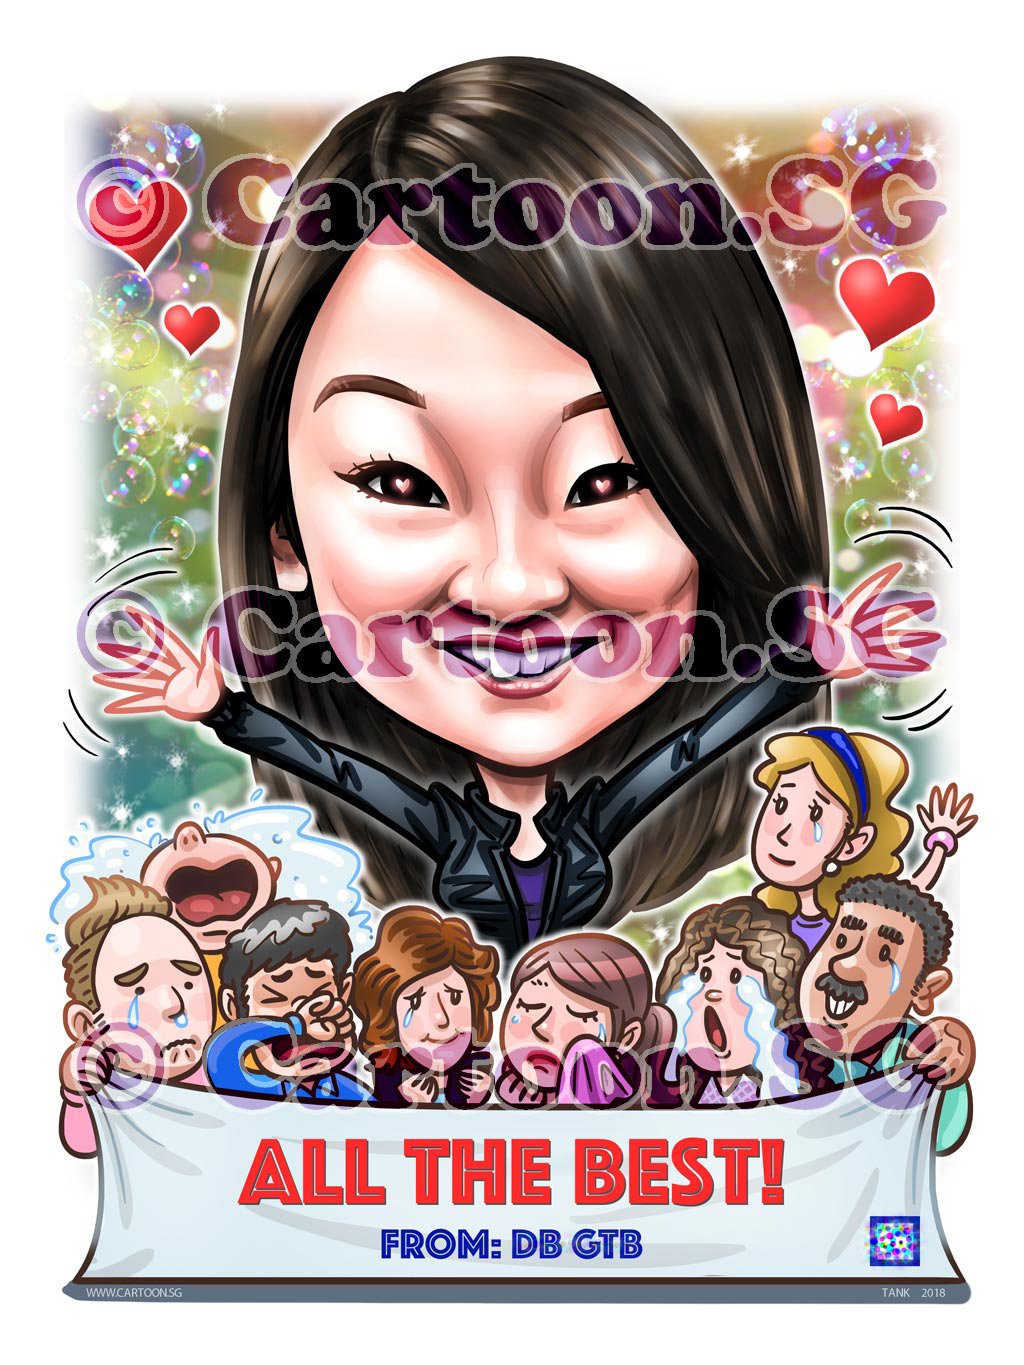 2018-02-08-Caricature-Singapore-digital-farewell-sweet-lovely-colleague-gift.jpg